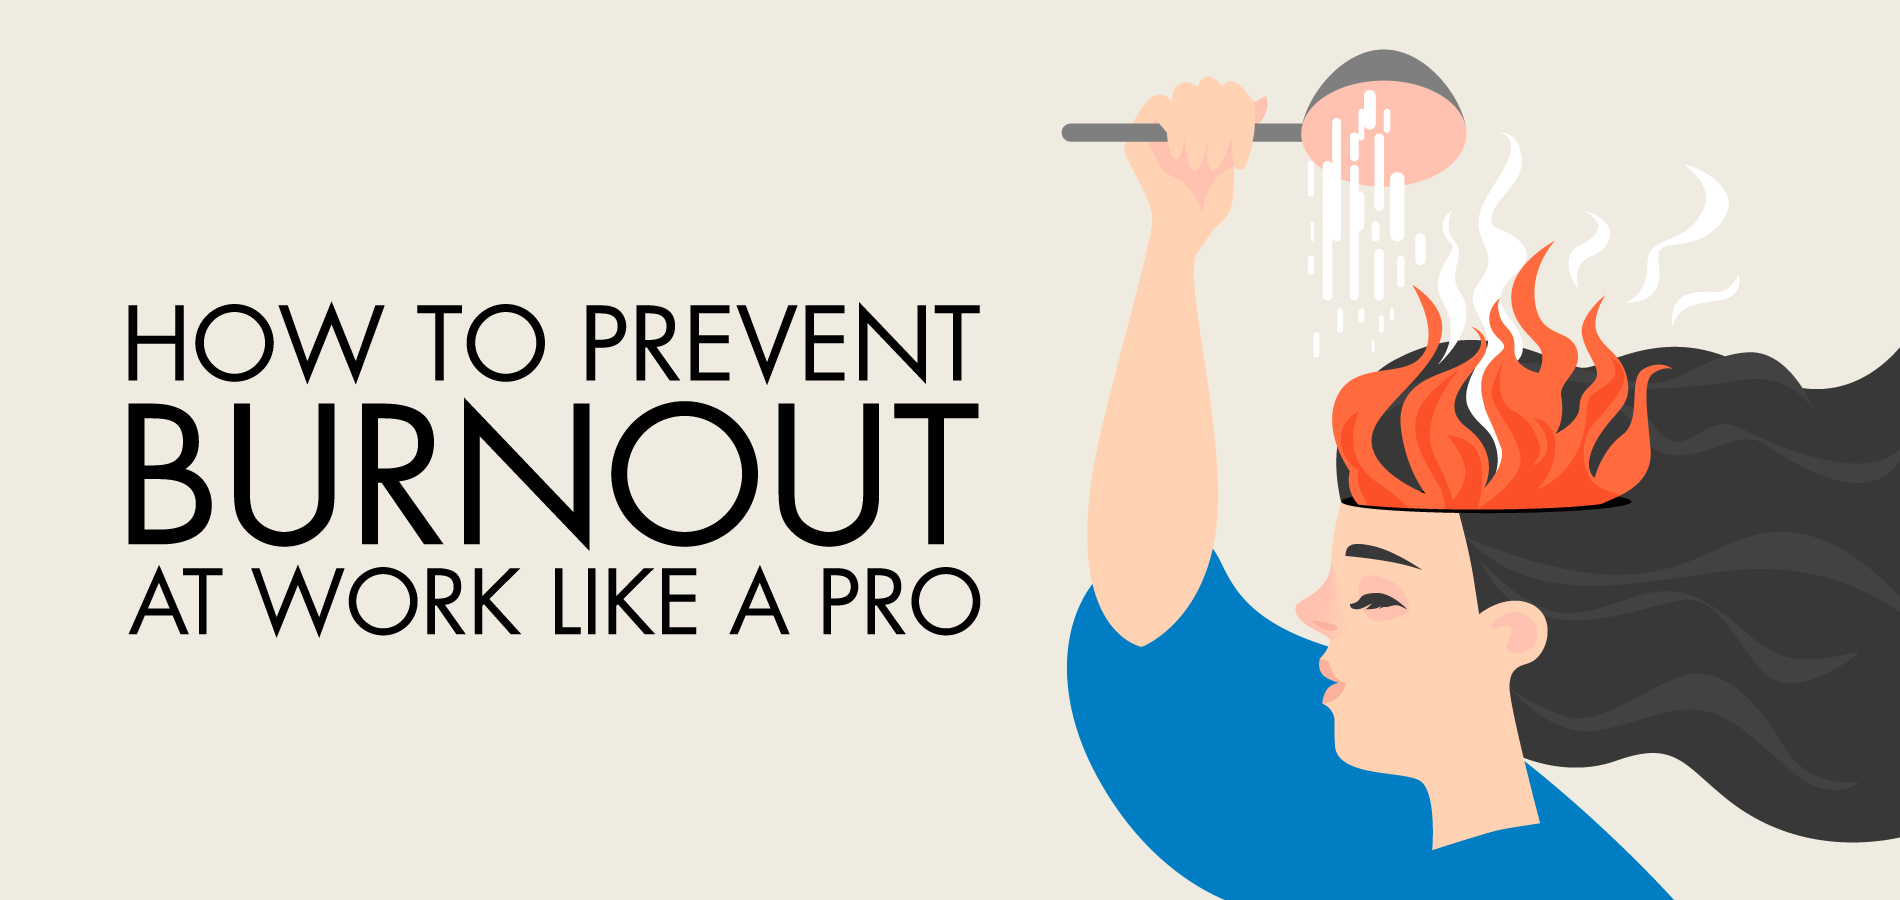 How to Prevent Burnout at Work Like a Pro